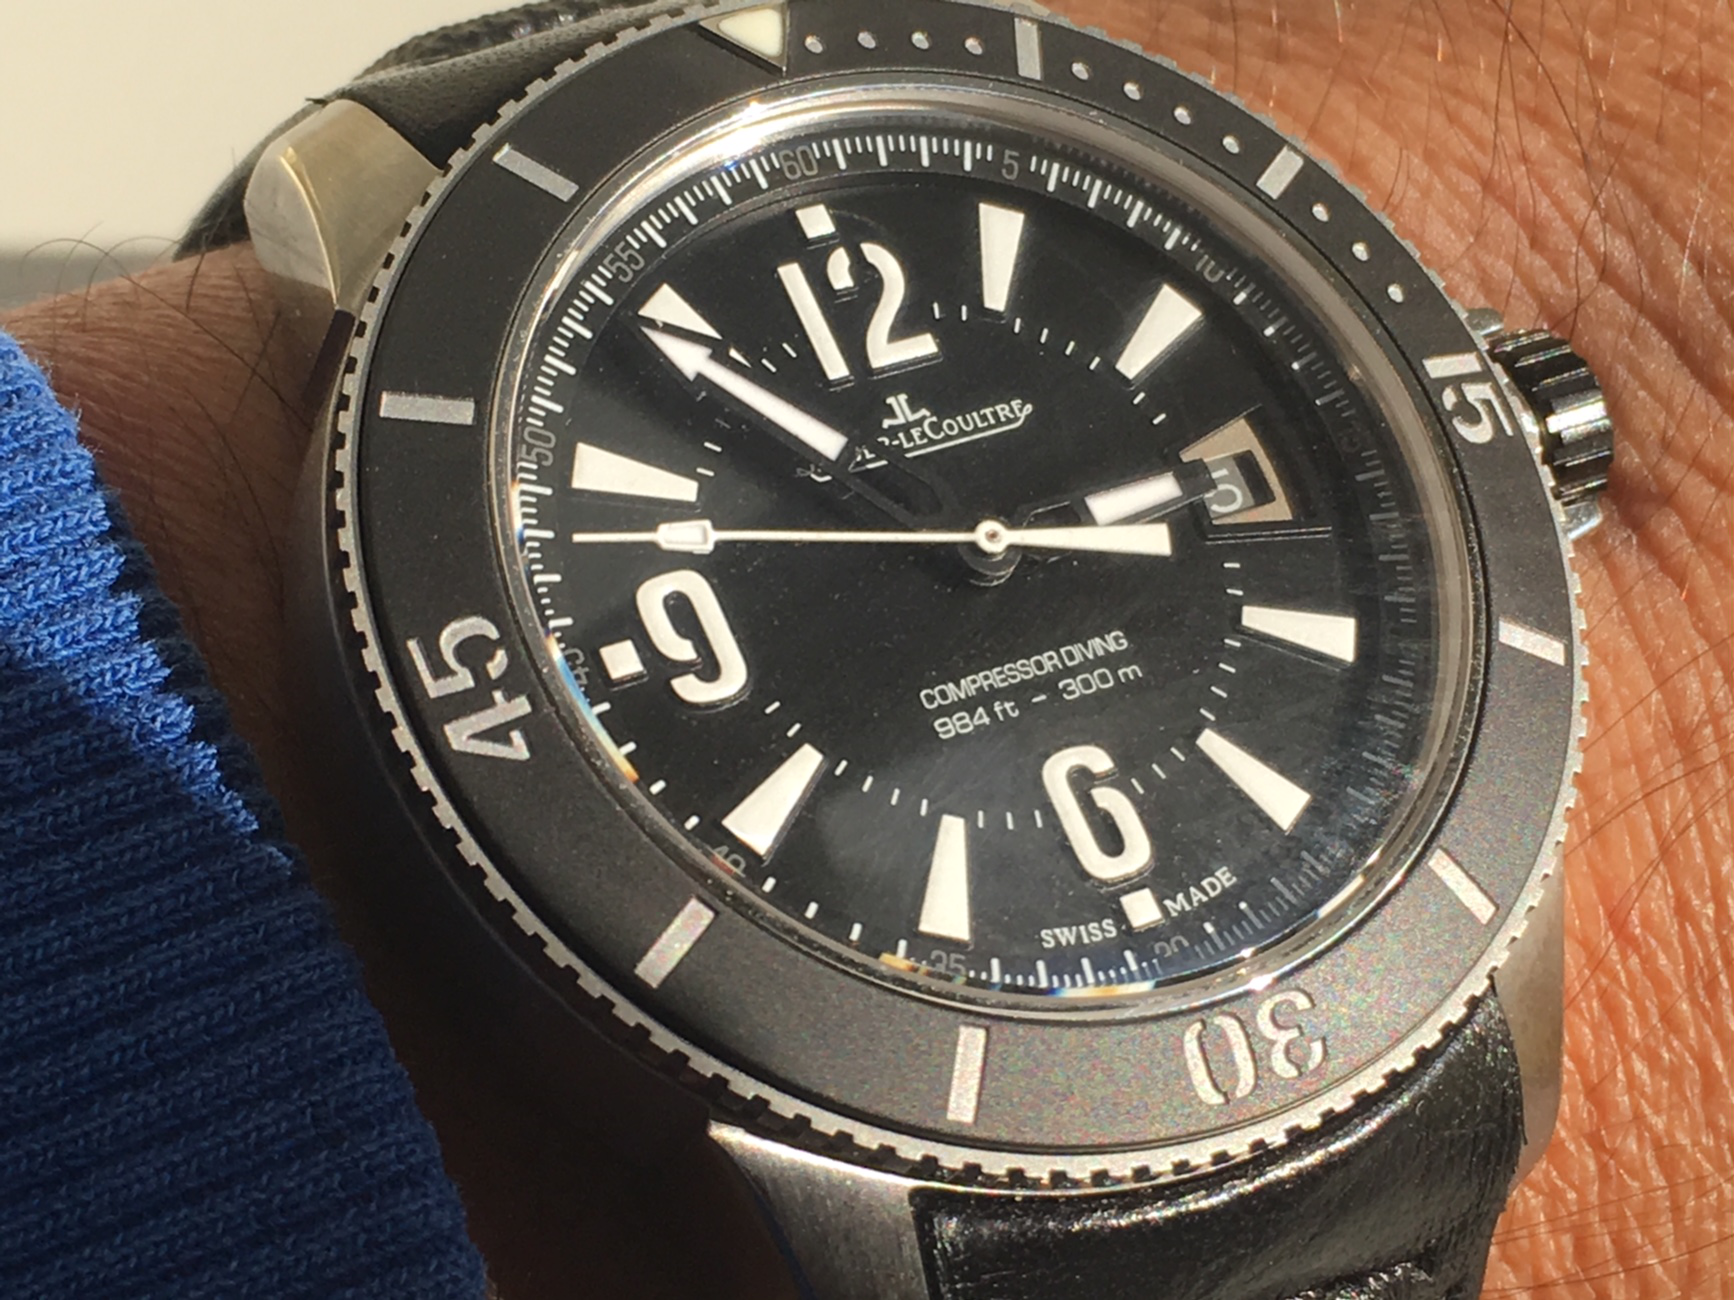 Jaeger-LeCoultre Master Compressor Diving Navy SEALS - Ρολόγια Replica